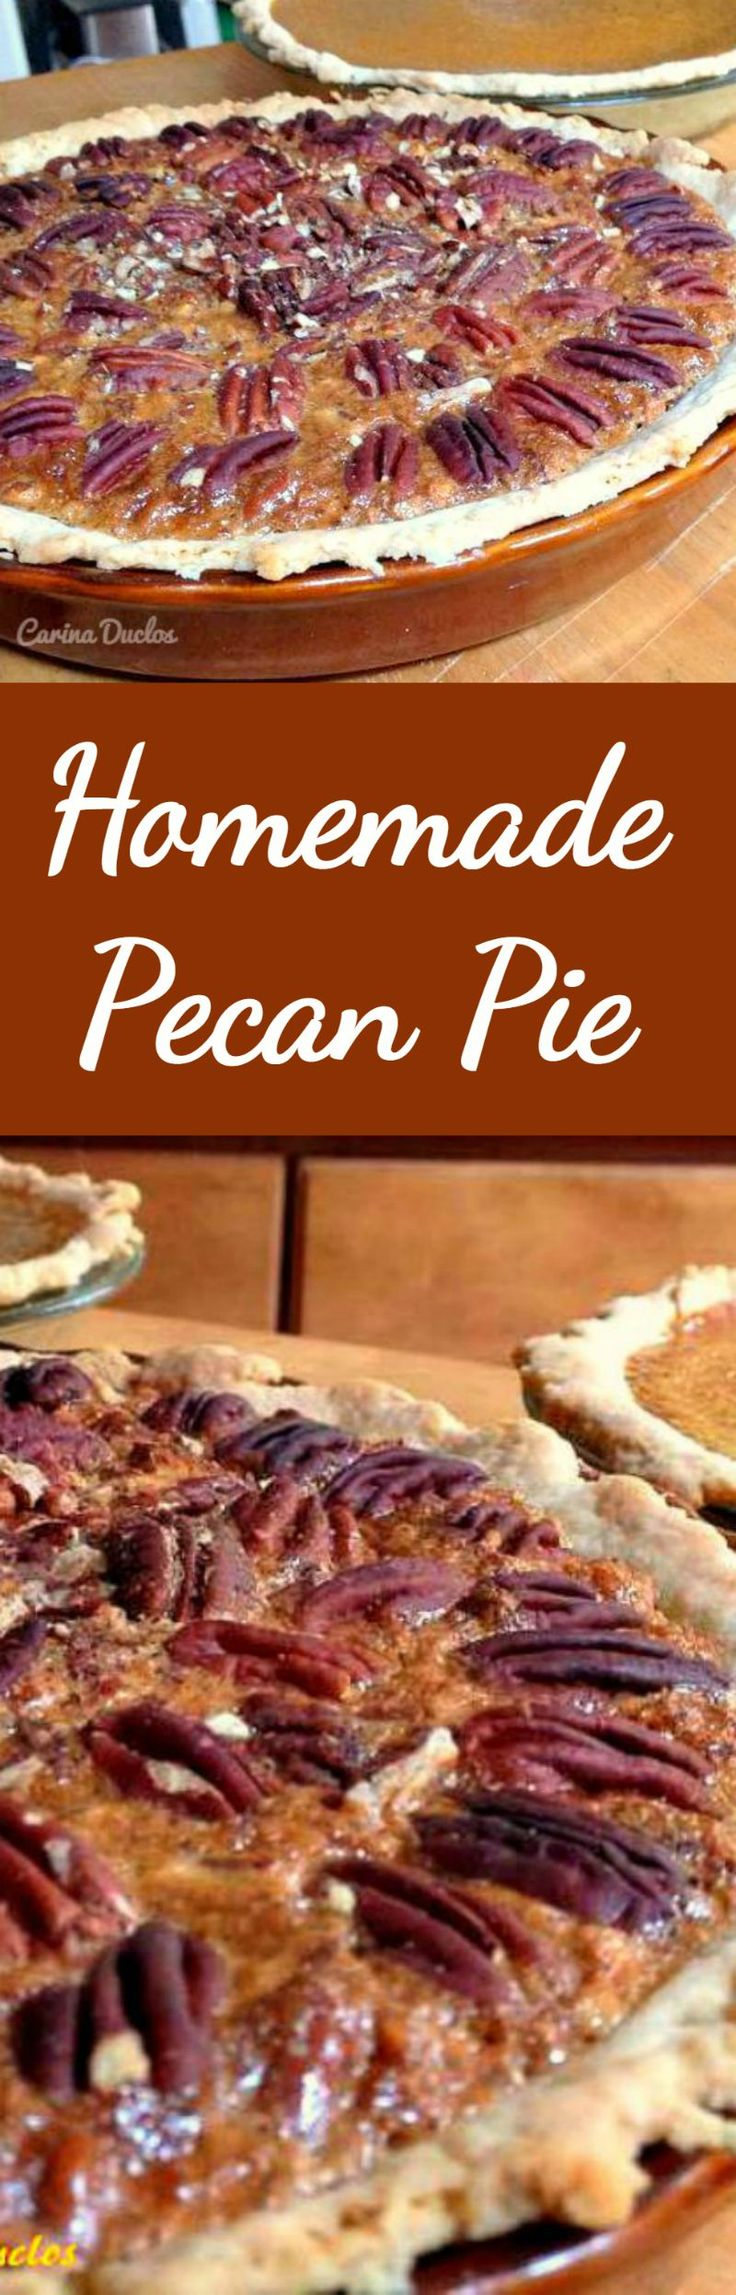 Homemade Pecan Pie. A delicious pie all made from scratch and super easy too! Thanksgiving Dessert